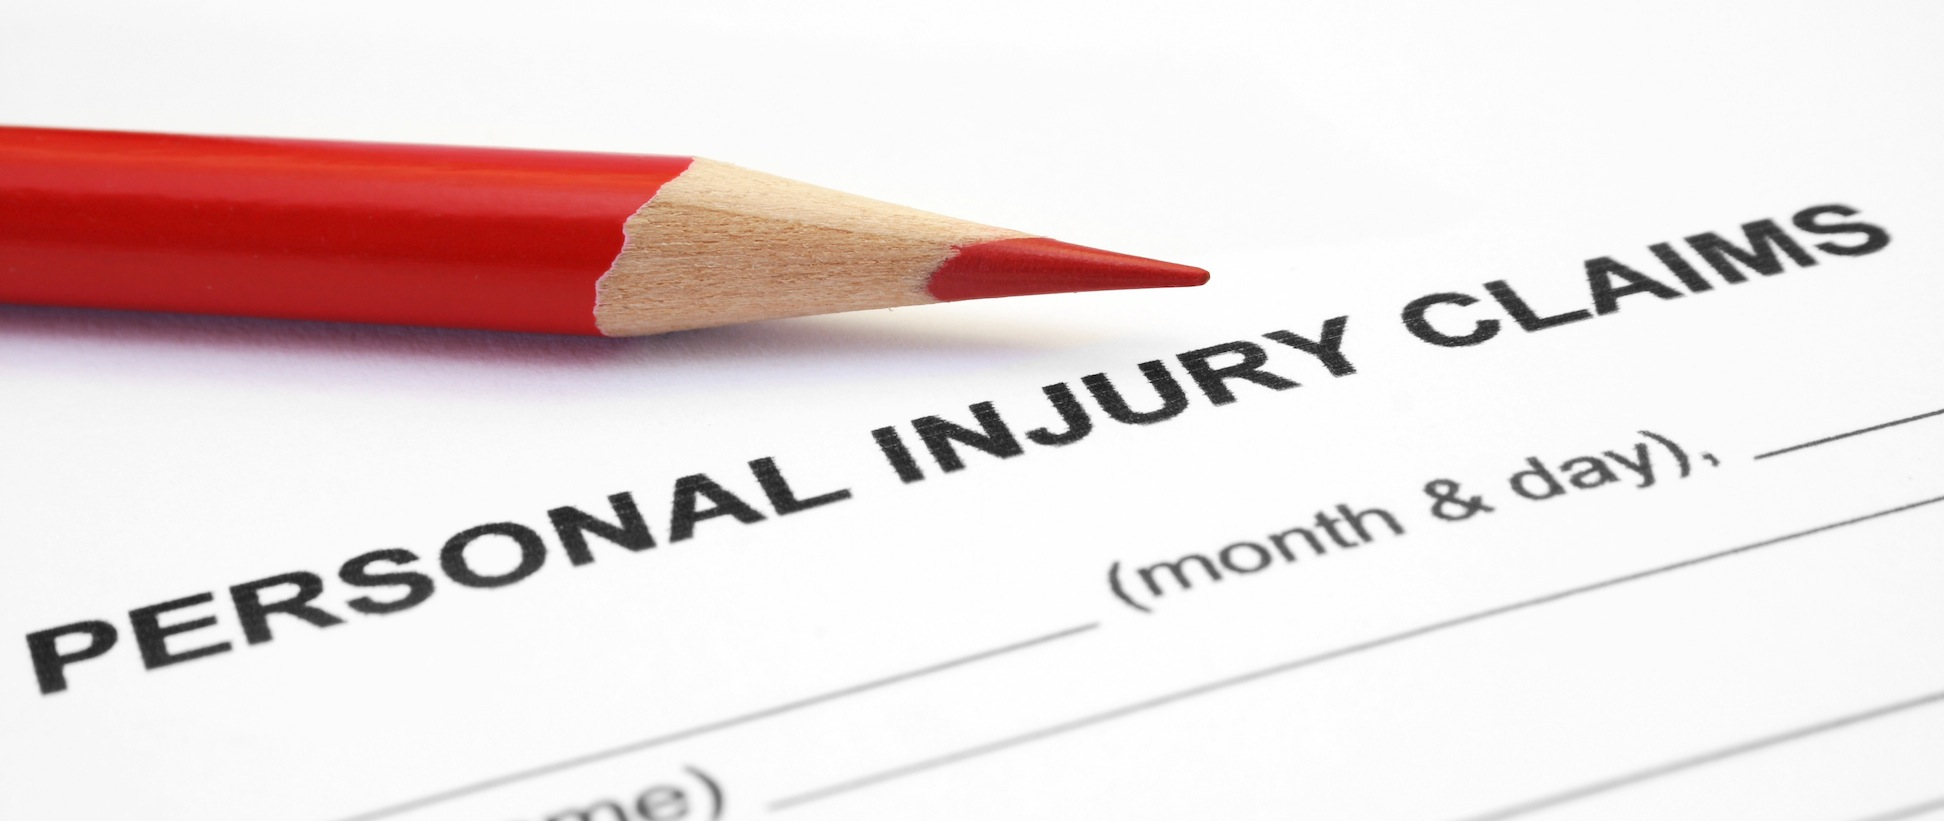 Finding A Reliable Personal Injury Attorney Available 24 Hours And 7 Days a Week